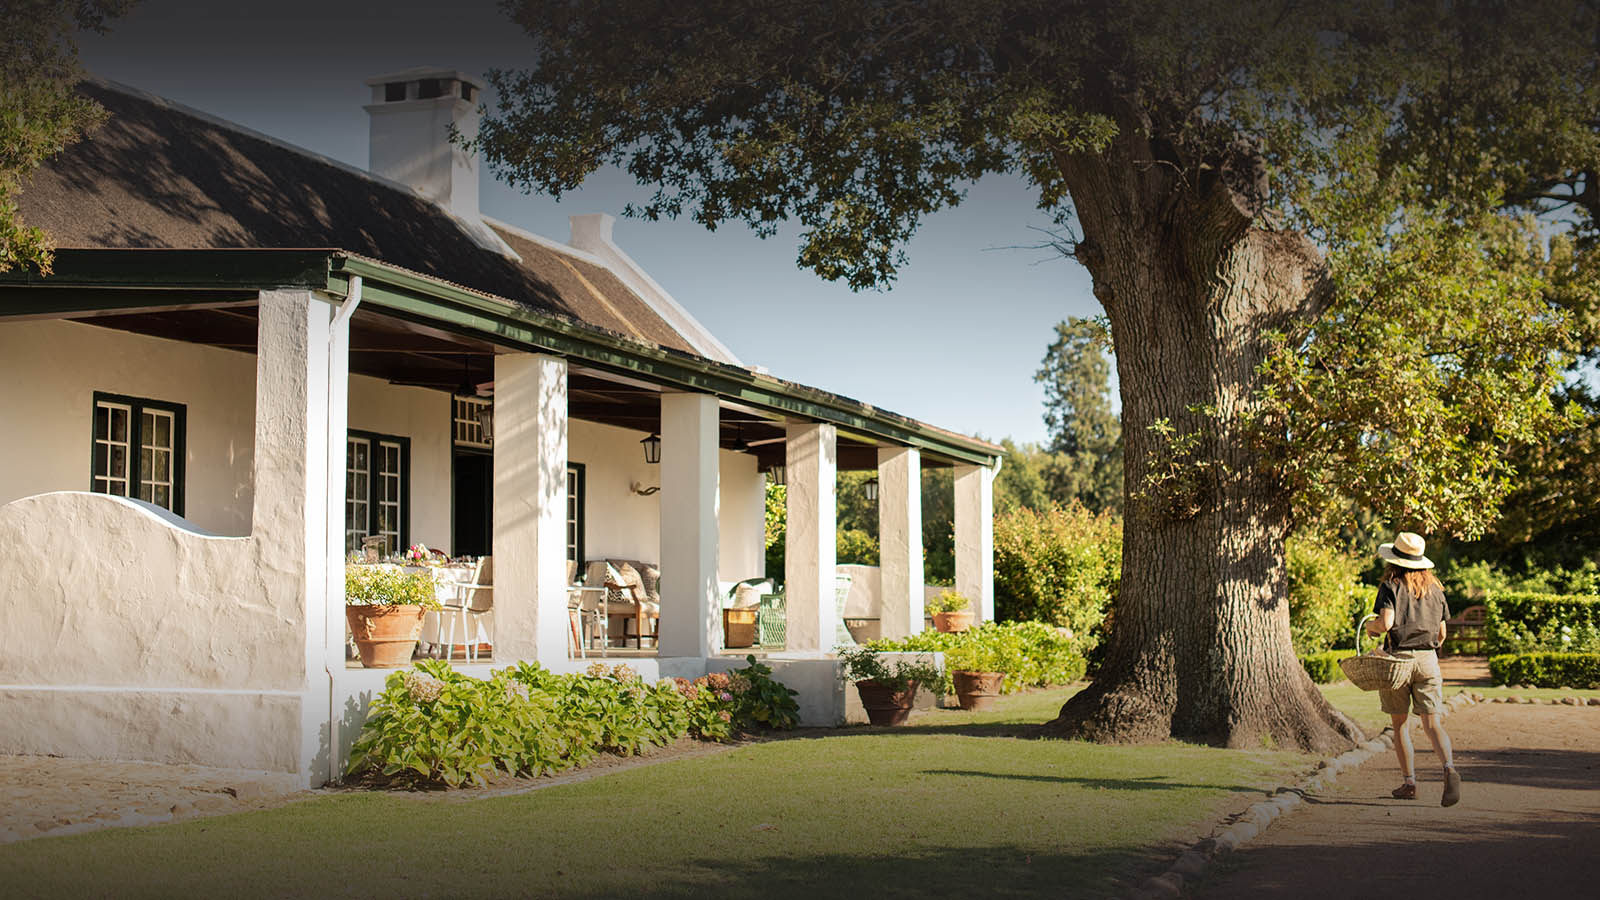 boschendal winelands-lodges-south-africa-accommodation-zambia-in-style-franschhoek-exquisite-drakenstein-mountains-exterior